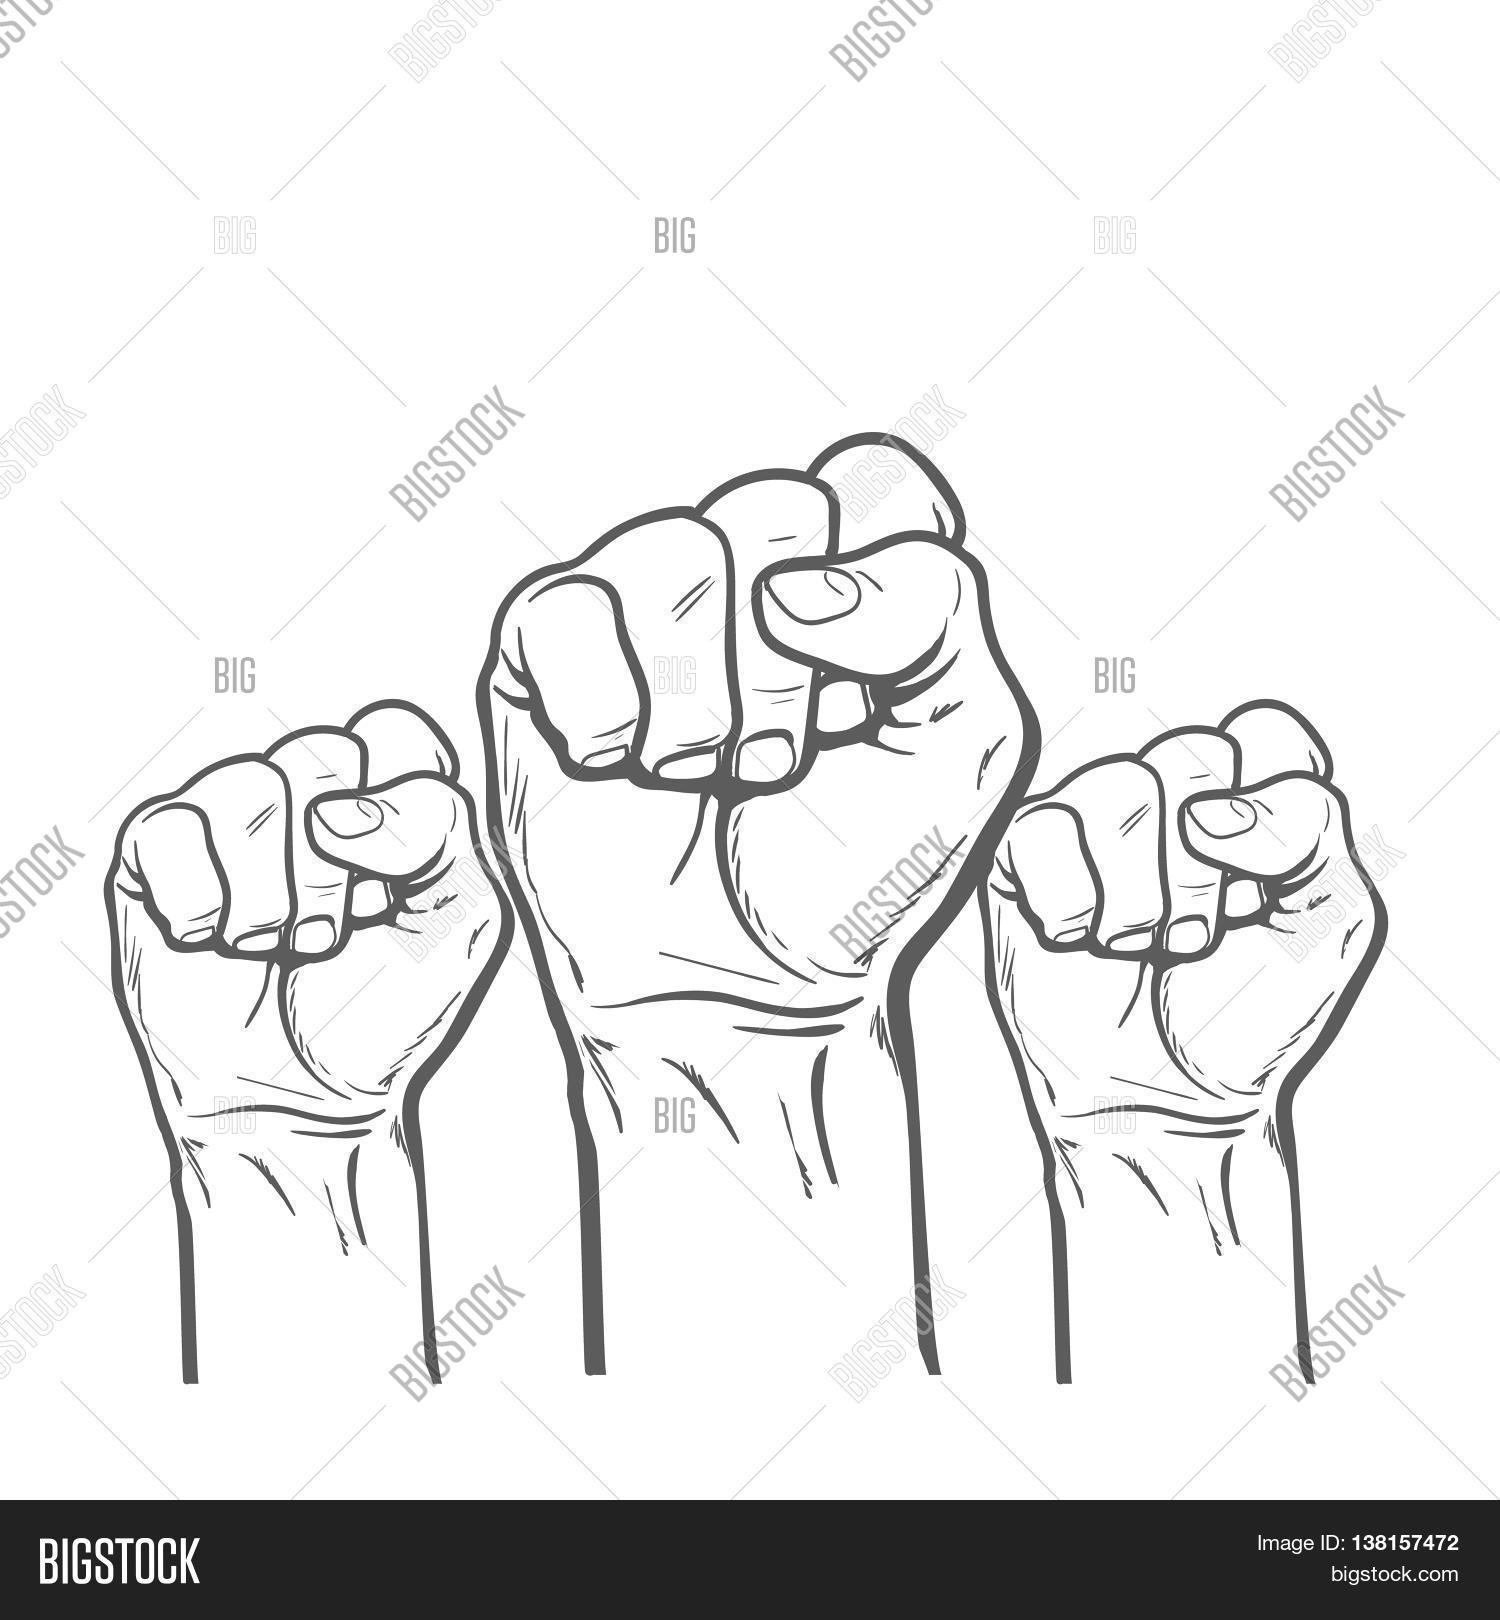 1500x1620 Many Man's Fist On Red Background. Image Amp Photo Bigstock